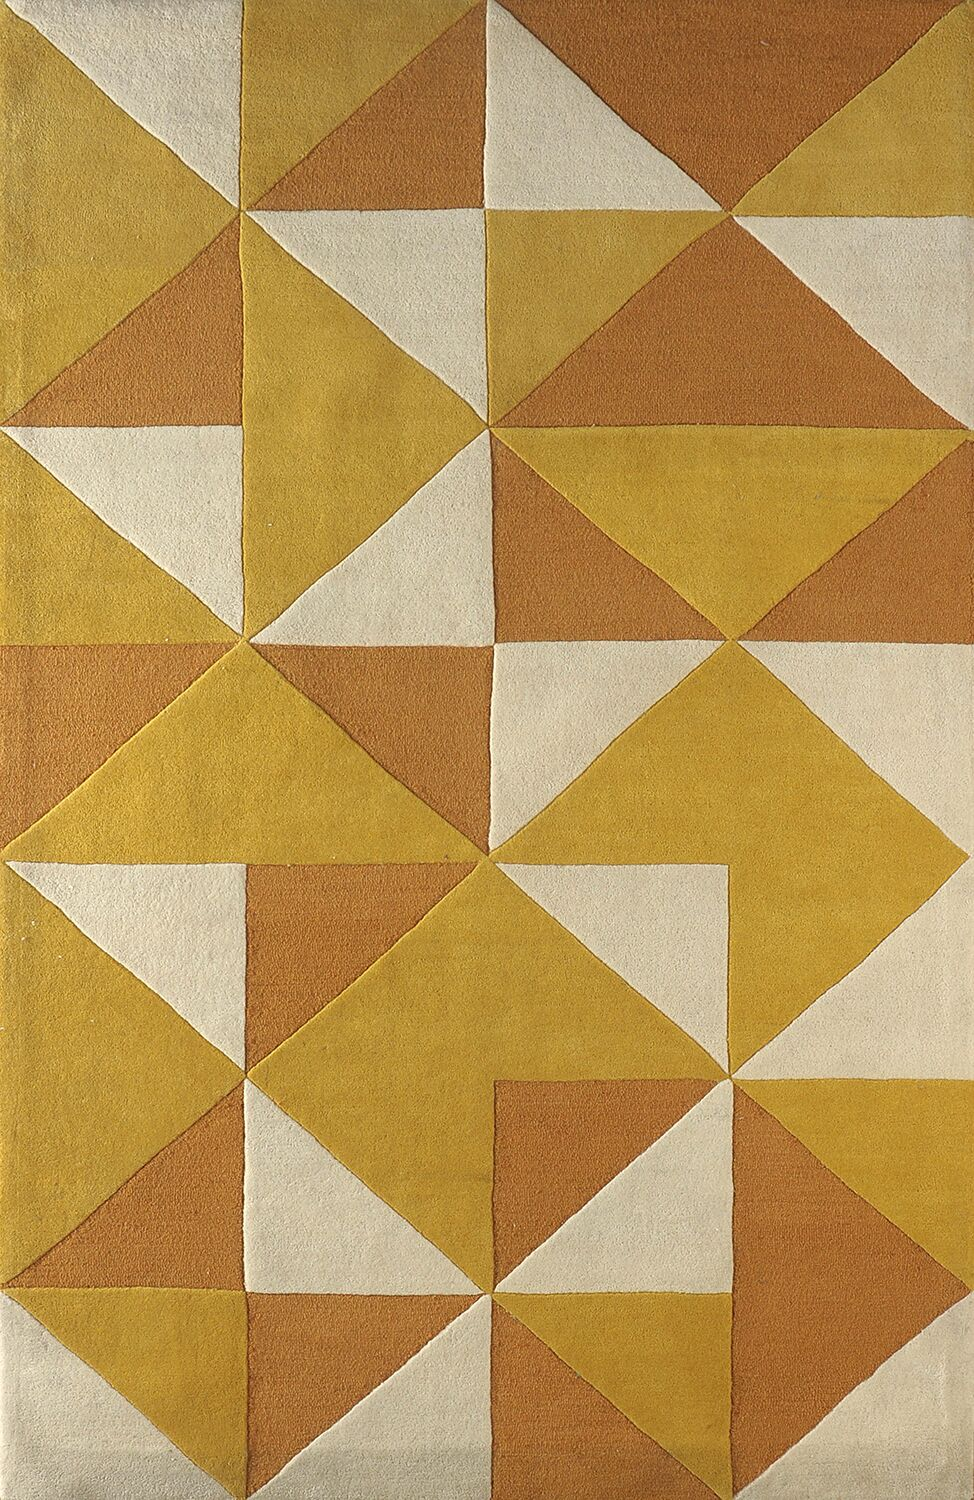 Lueras Hand-Tufted Gold/Ivory Area Rug Rug Size: Rectangle 6' x 9'